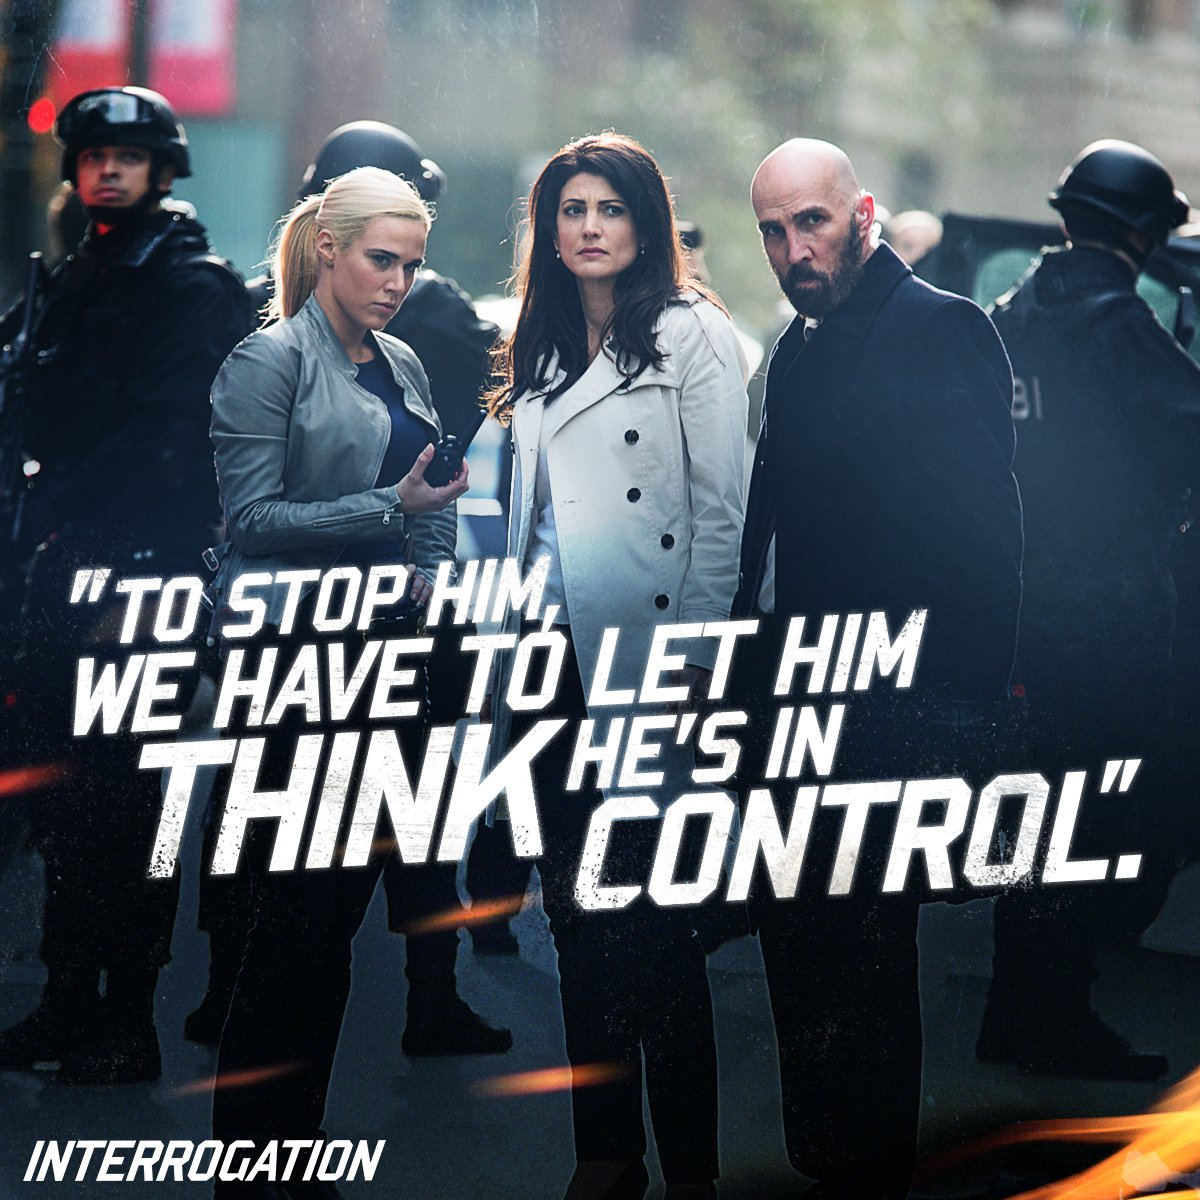 It's a game of wits in #Interrogation. Available on Blu-ray & DVD. https://t.co/7t7N8mNUbP https://t.co/1BMU7fqLNv